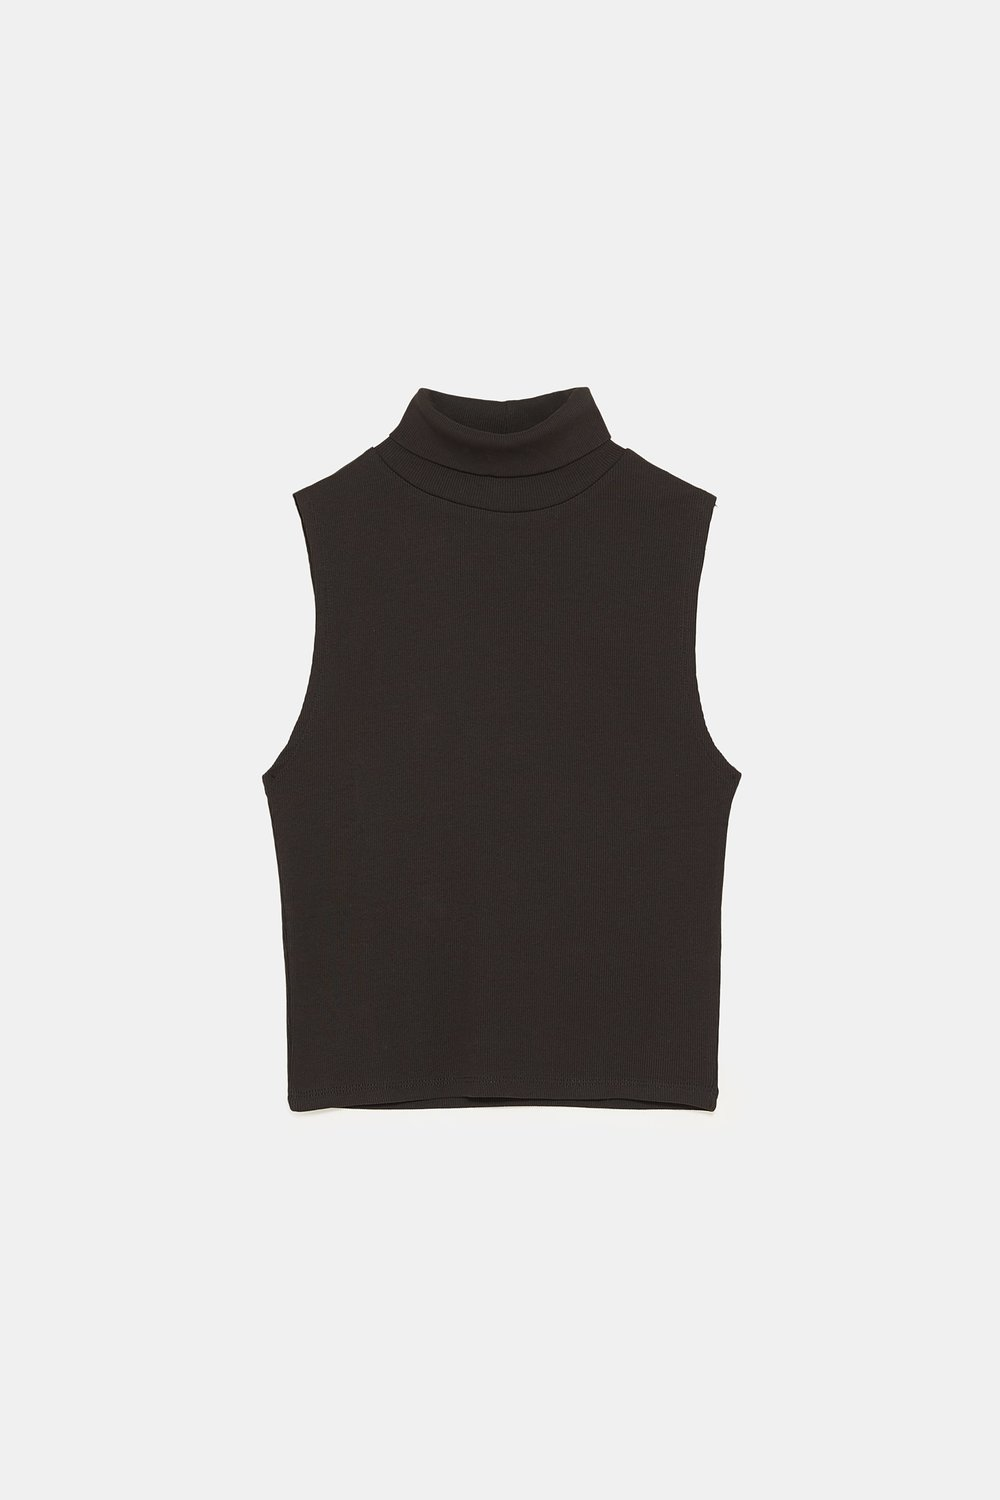 https://www.zara.com/ca/en/sleeveless-ribbed-top-p03253804.html?v1=6682503&v2=1074633